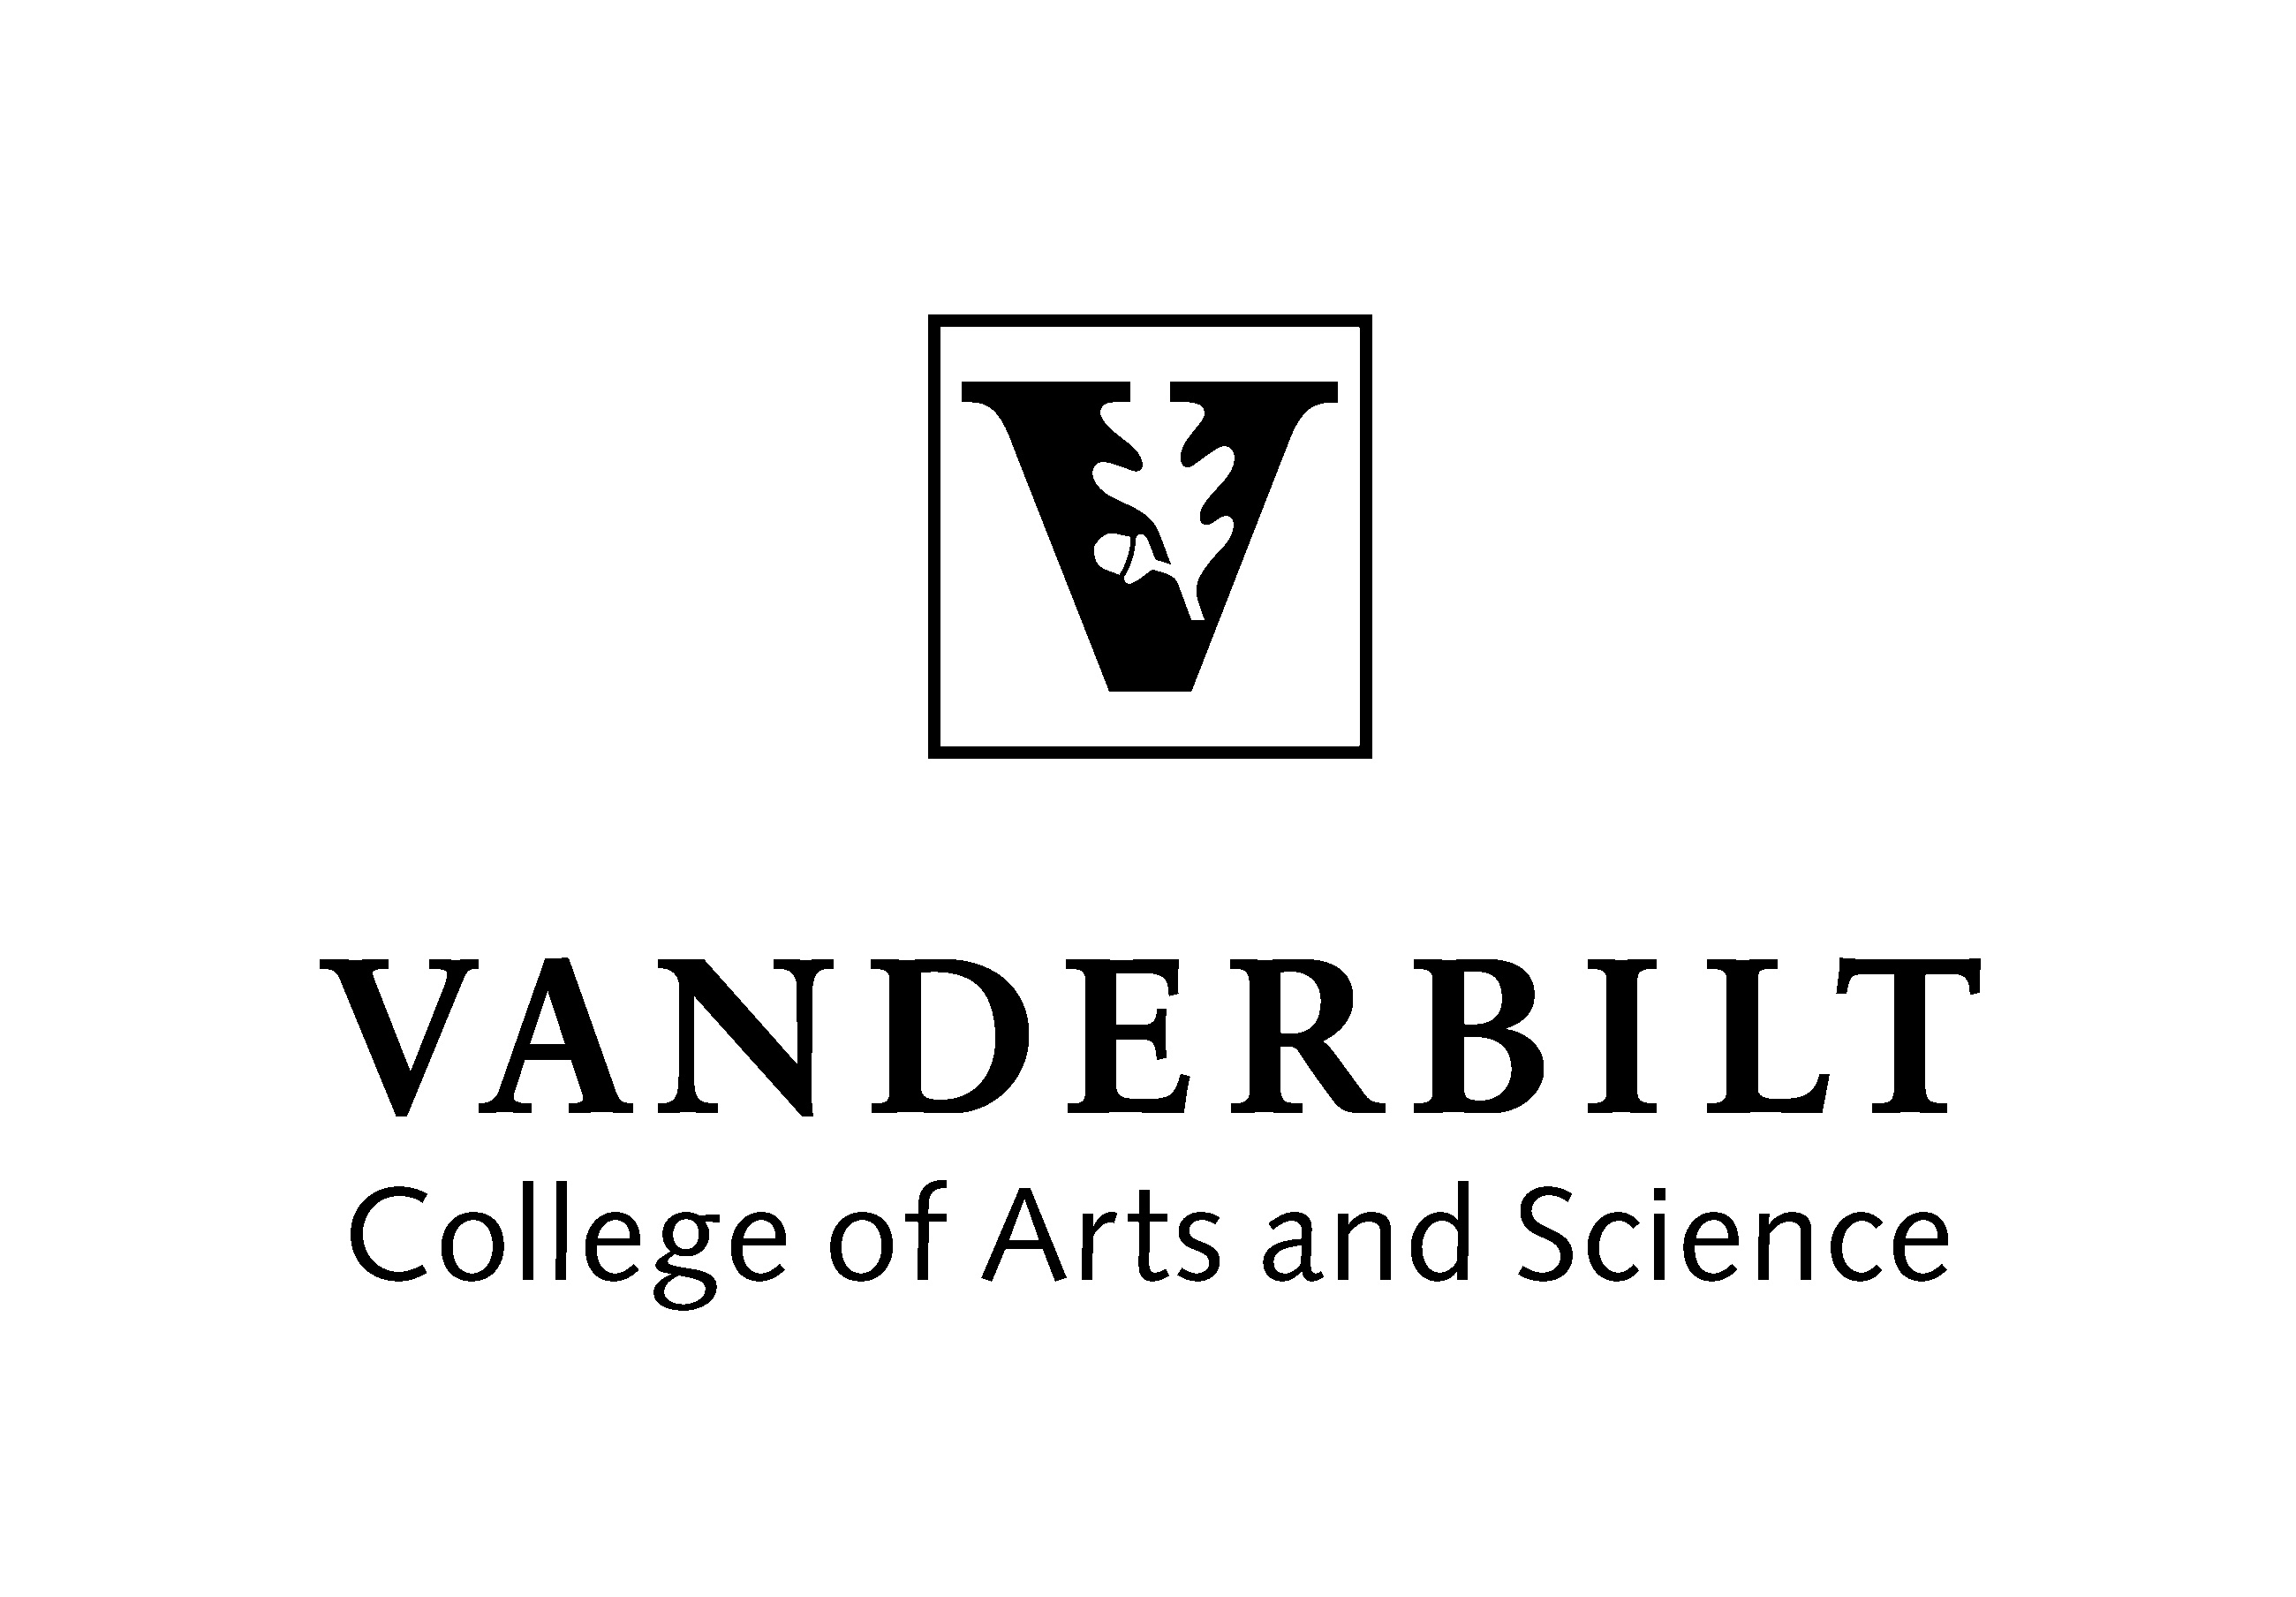 vanderbilt dissertations Vanderbilt dissertations - discover easy recommendations how to get a plagiarism free themed dissertation from a professional provider use from our inexpensive custom term paper writing services and get the most from unbelievable quality best hq writing services provided by top professionals.